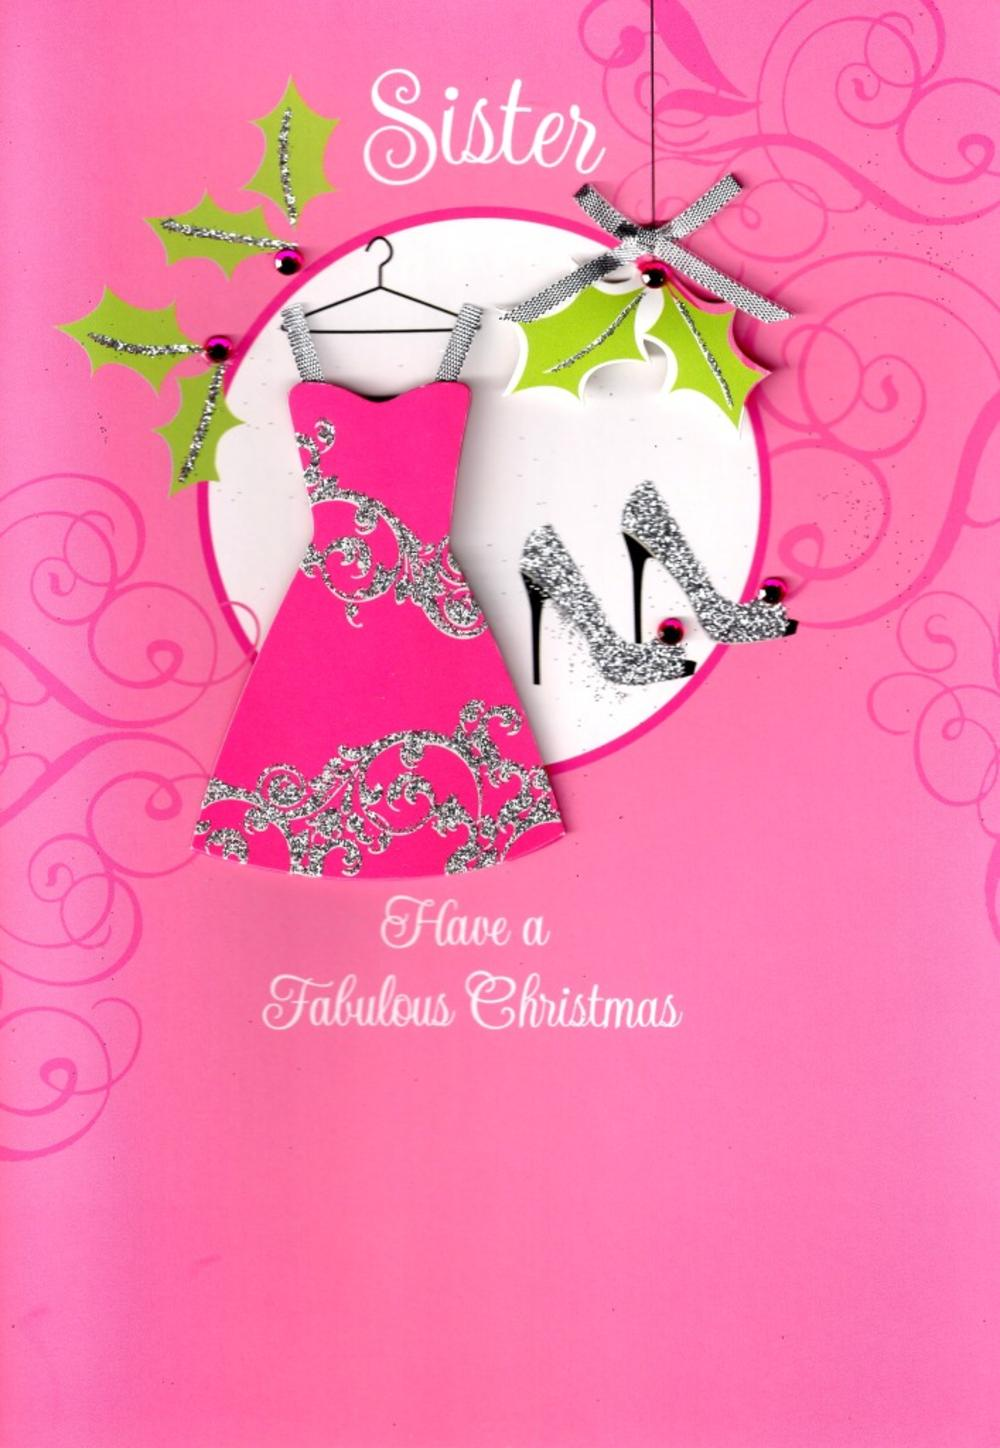 Sister Luxury 3D Glitter Christmas Card Special Family Relations Xmas Cards